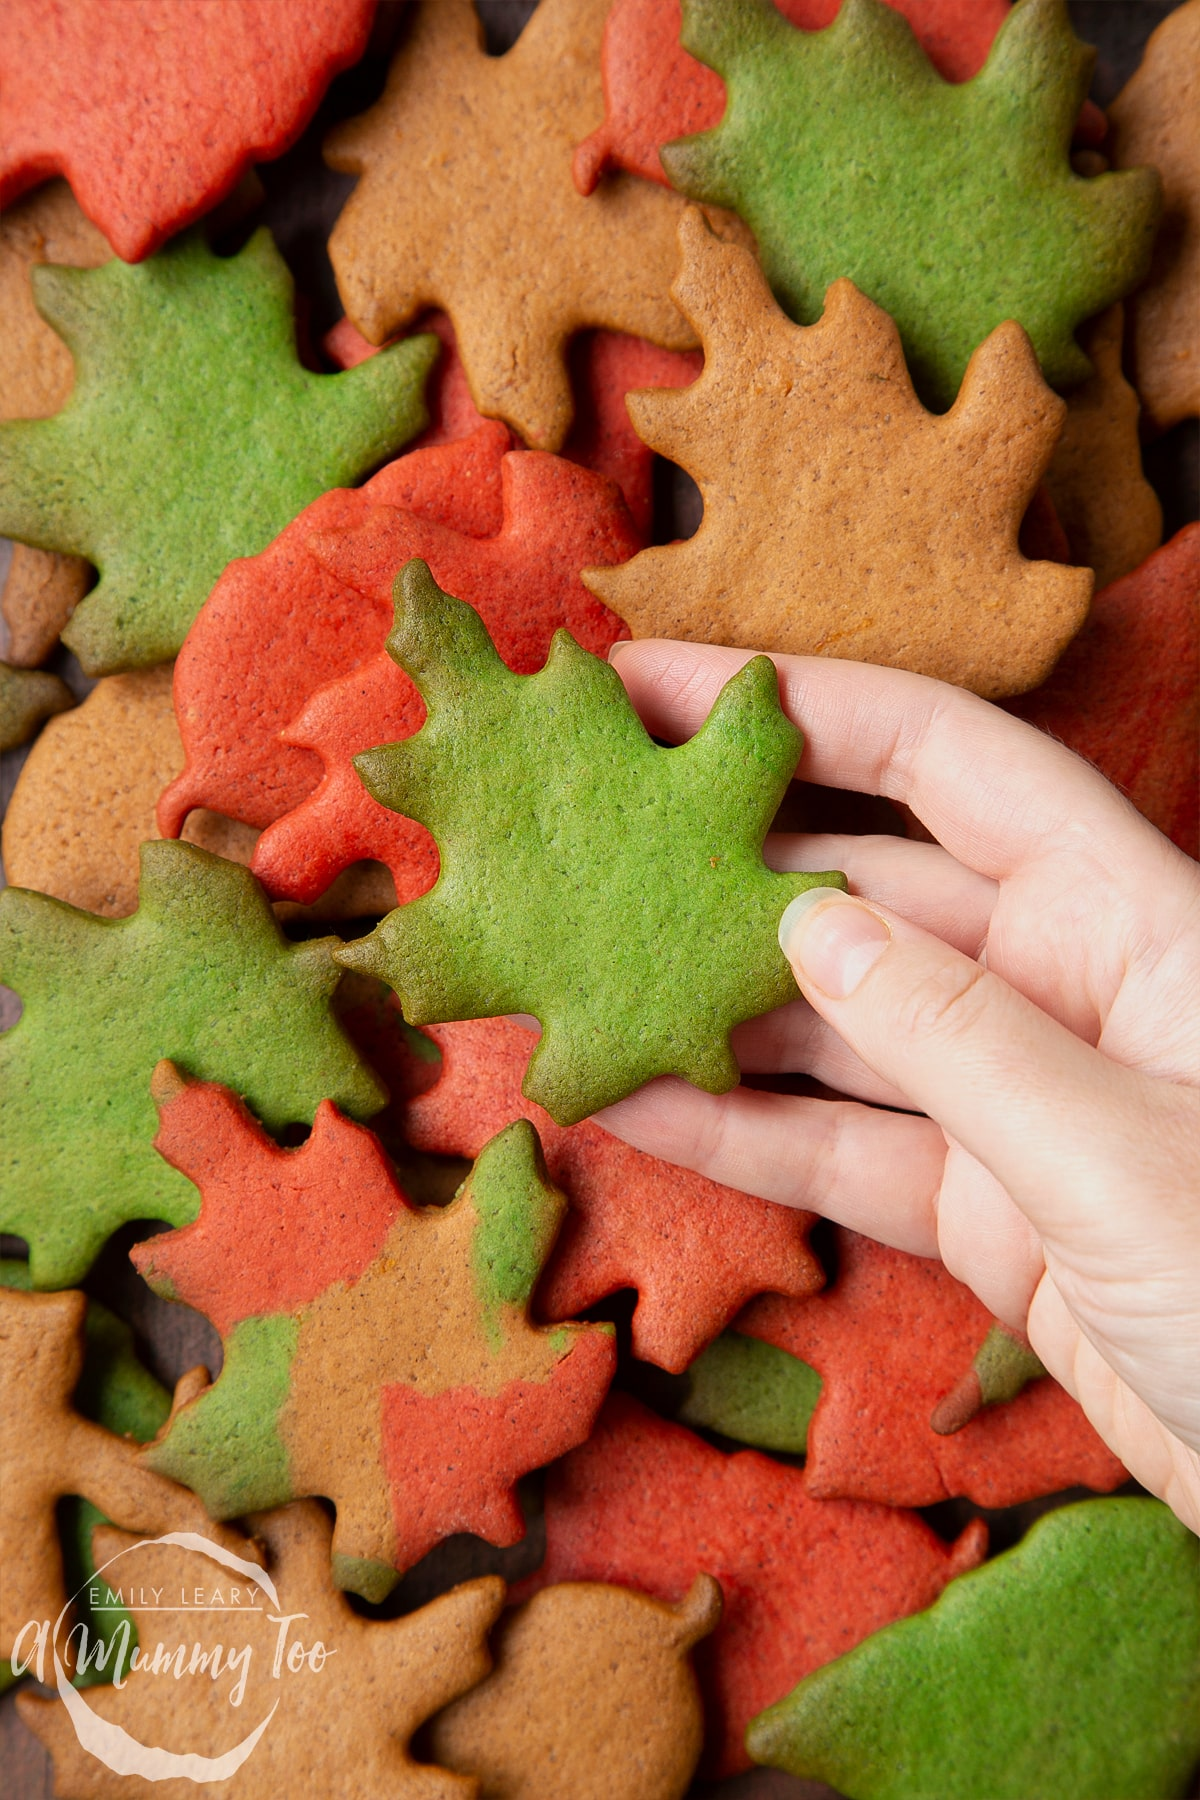 A pile of colourful red, green and brown autumn cookies cut into the shapes of autumn leaves. A hand hols a green leaf.